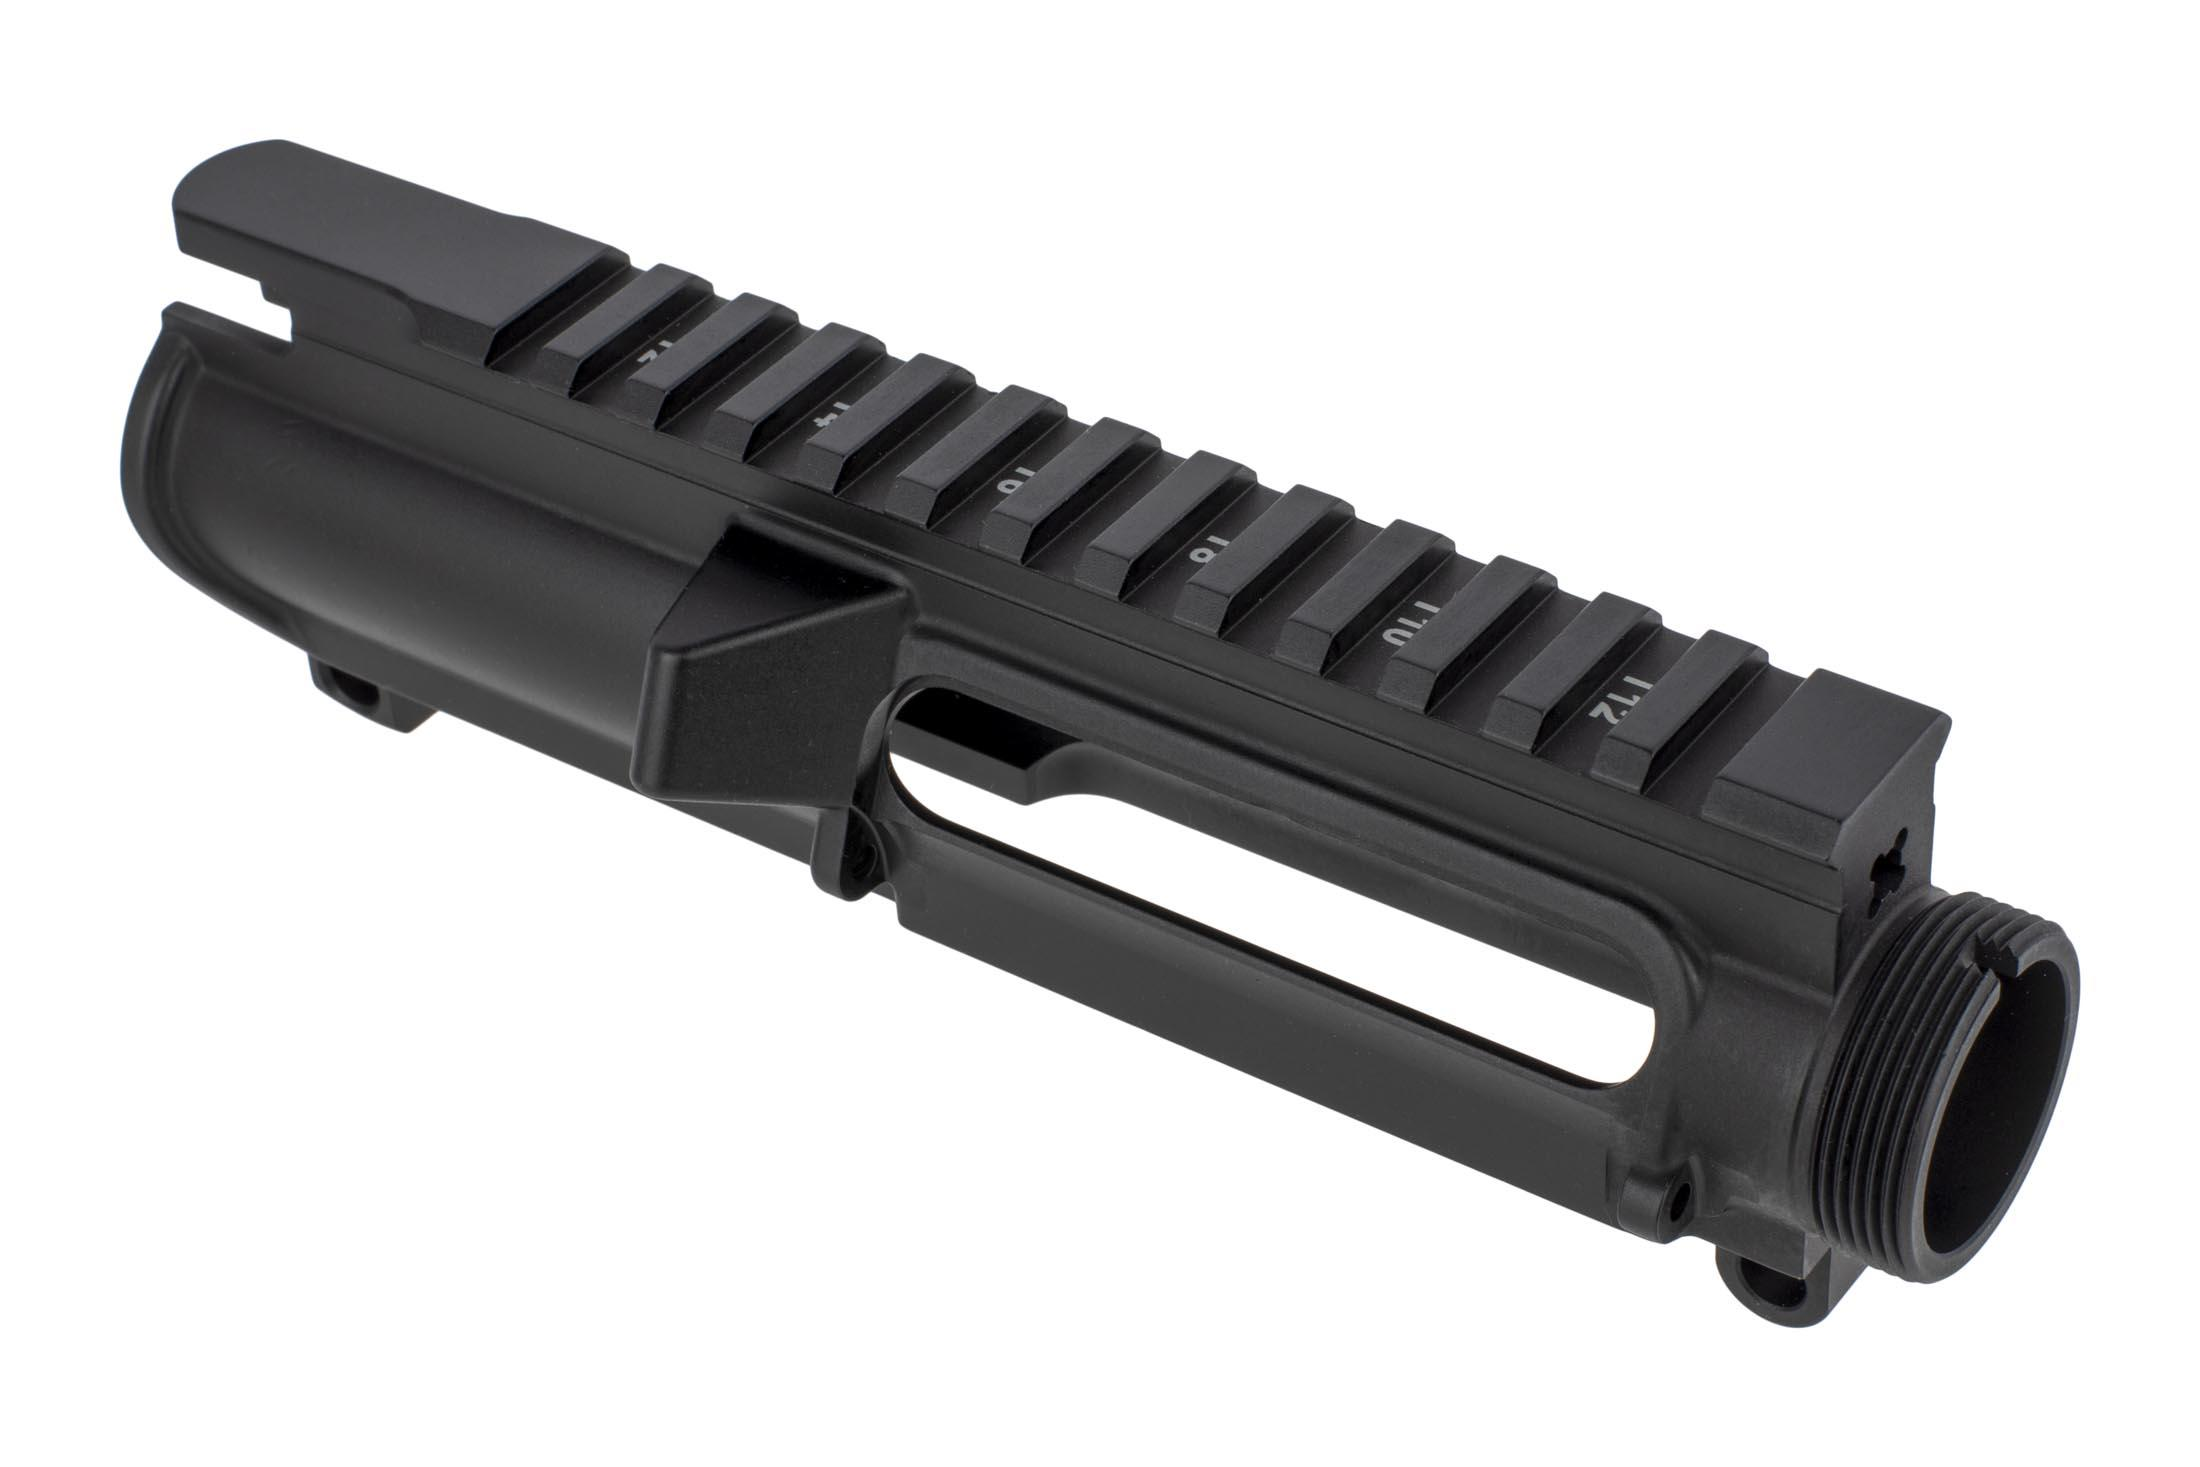 Aero Precision slick-slide stripped AR-15 forged upper receiver with tough black anodized finish and laser engraved T-marks